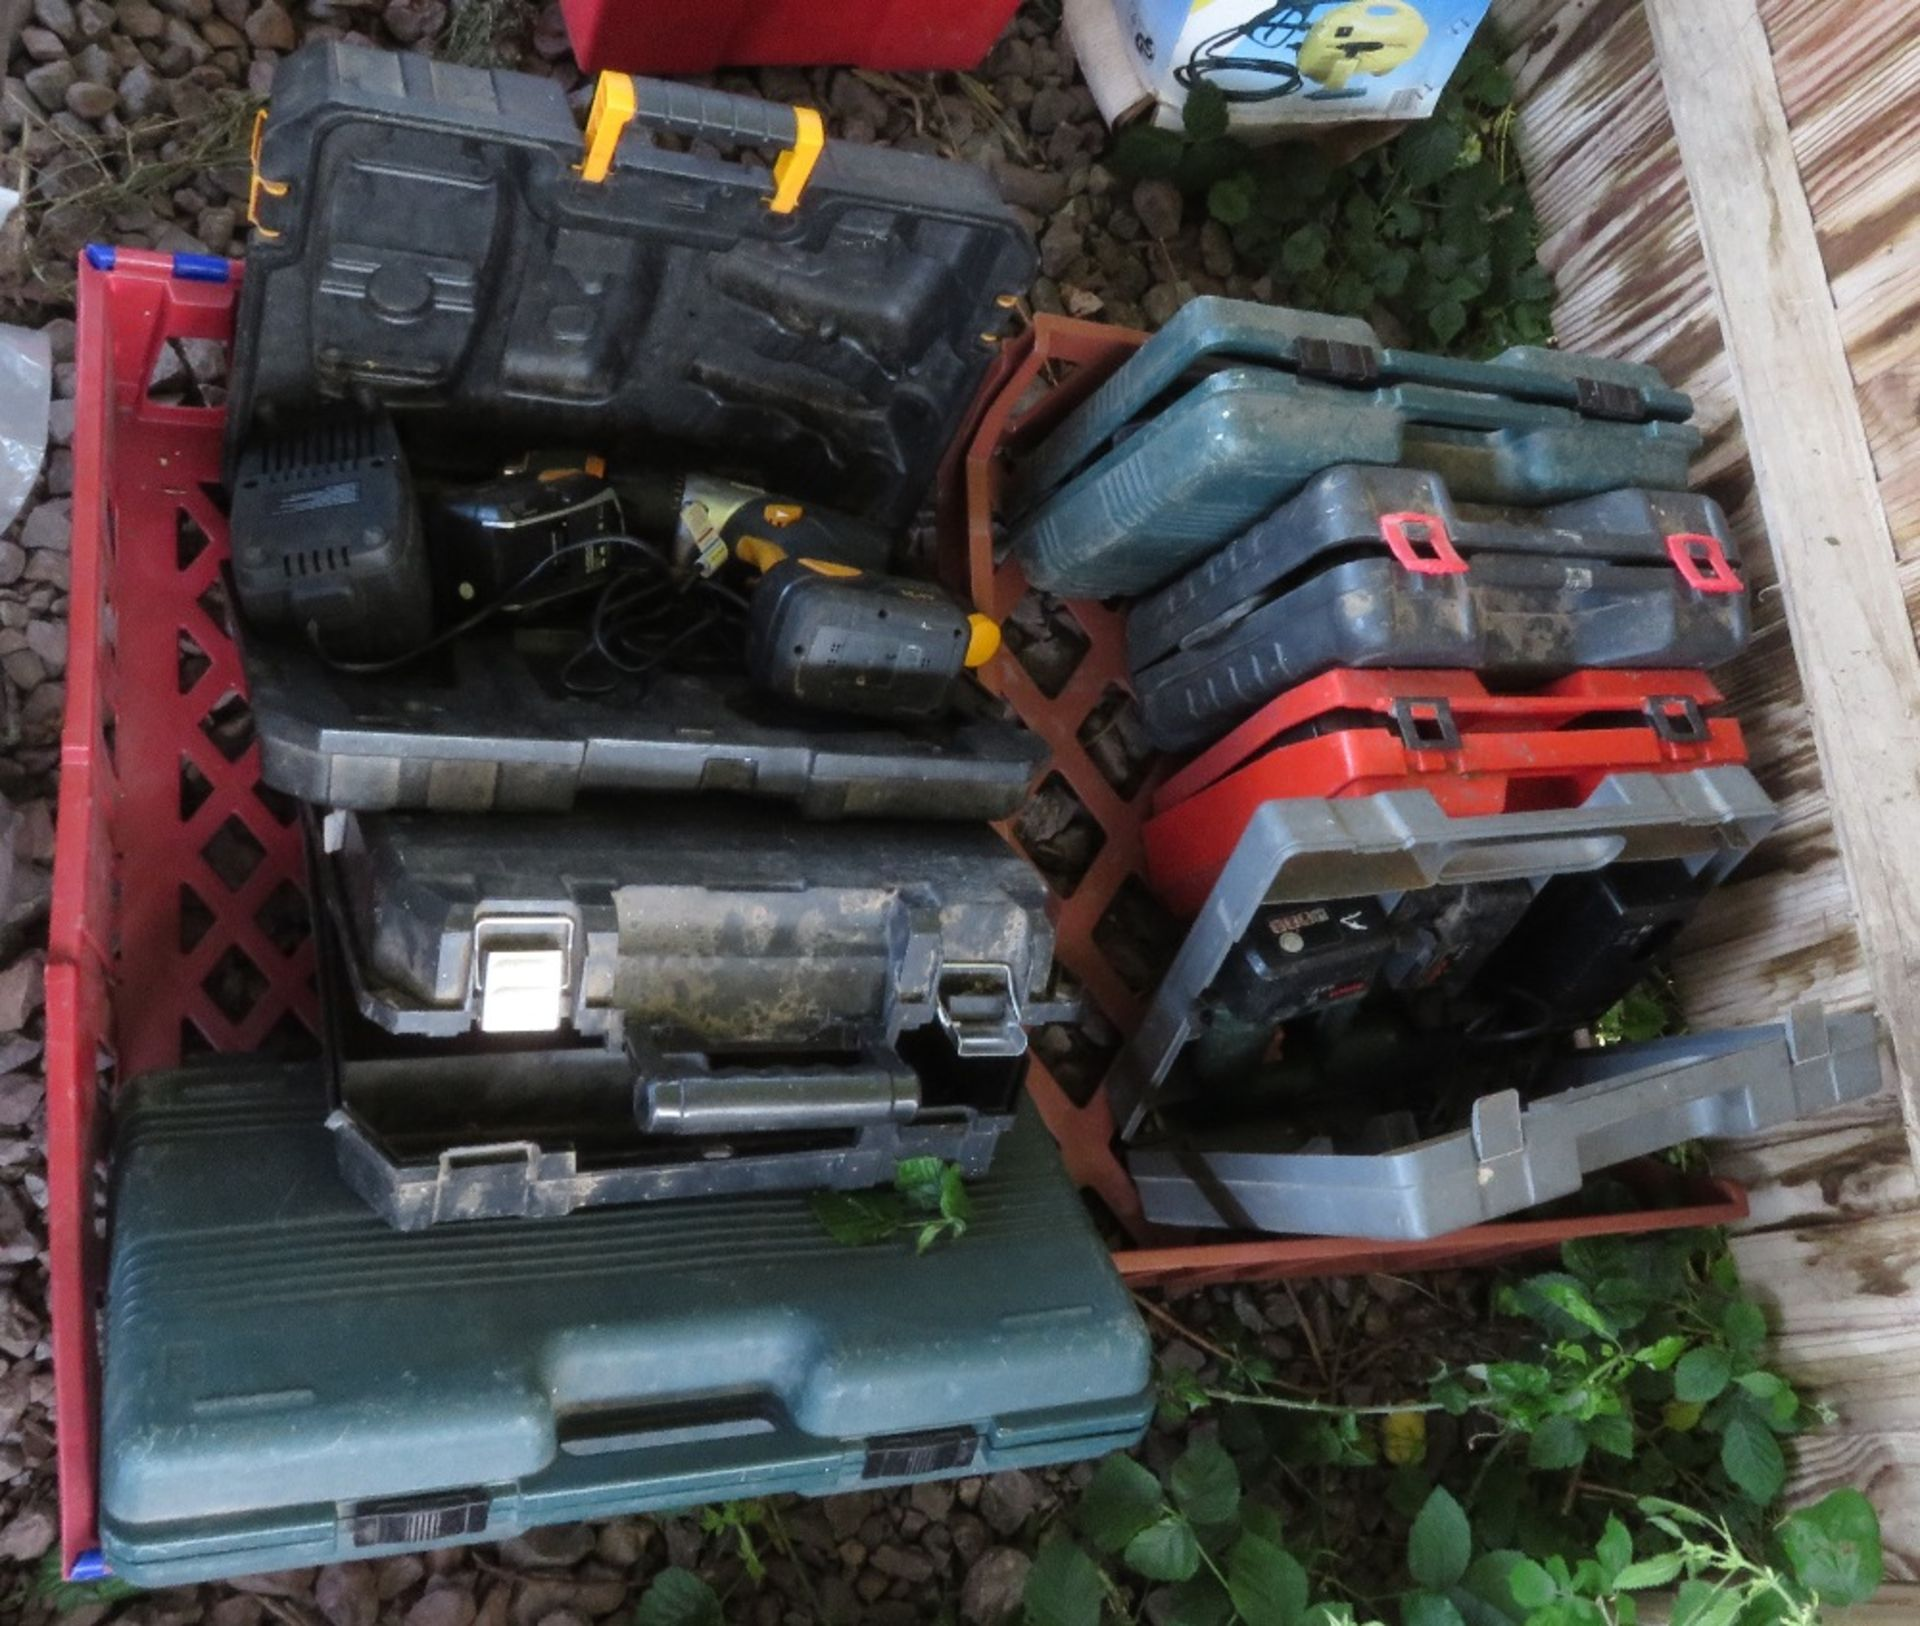 Lot 71 - Quantity of cased power tools mainly rechargeable drills of various descriptions plus 1 skill drill,